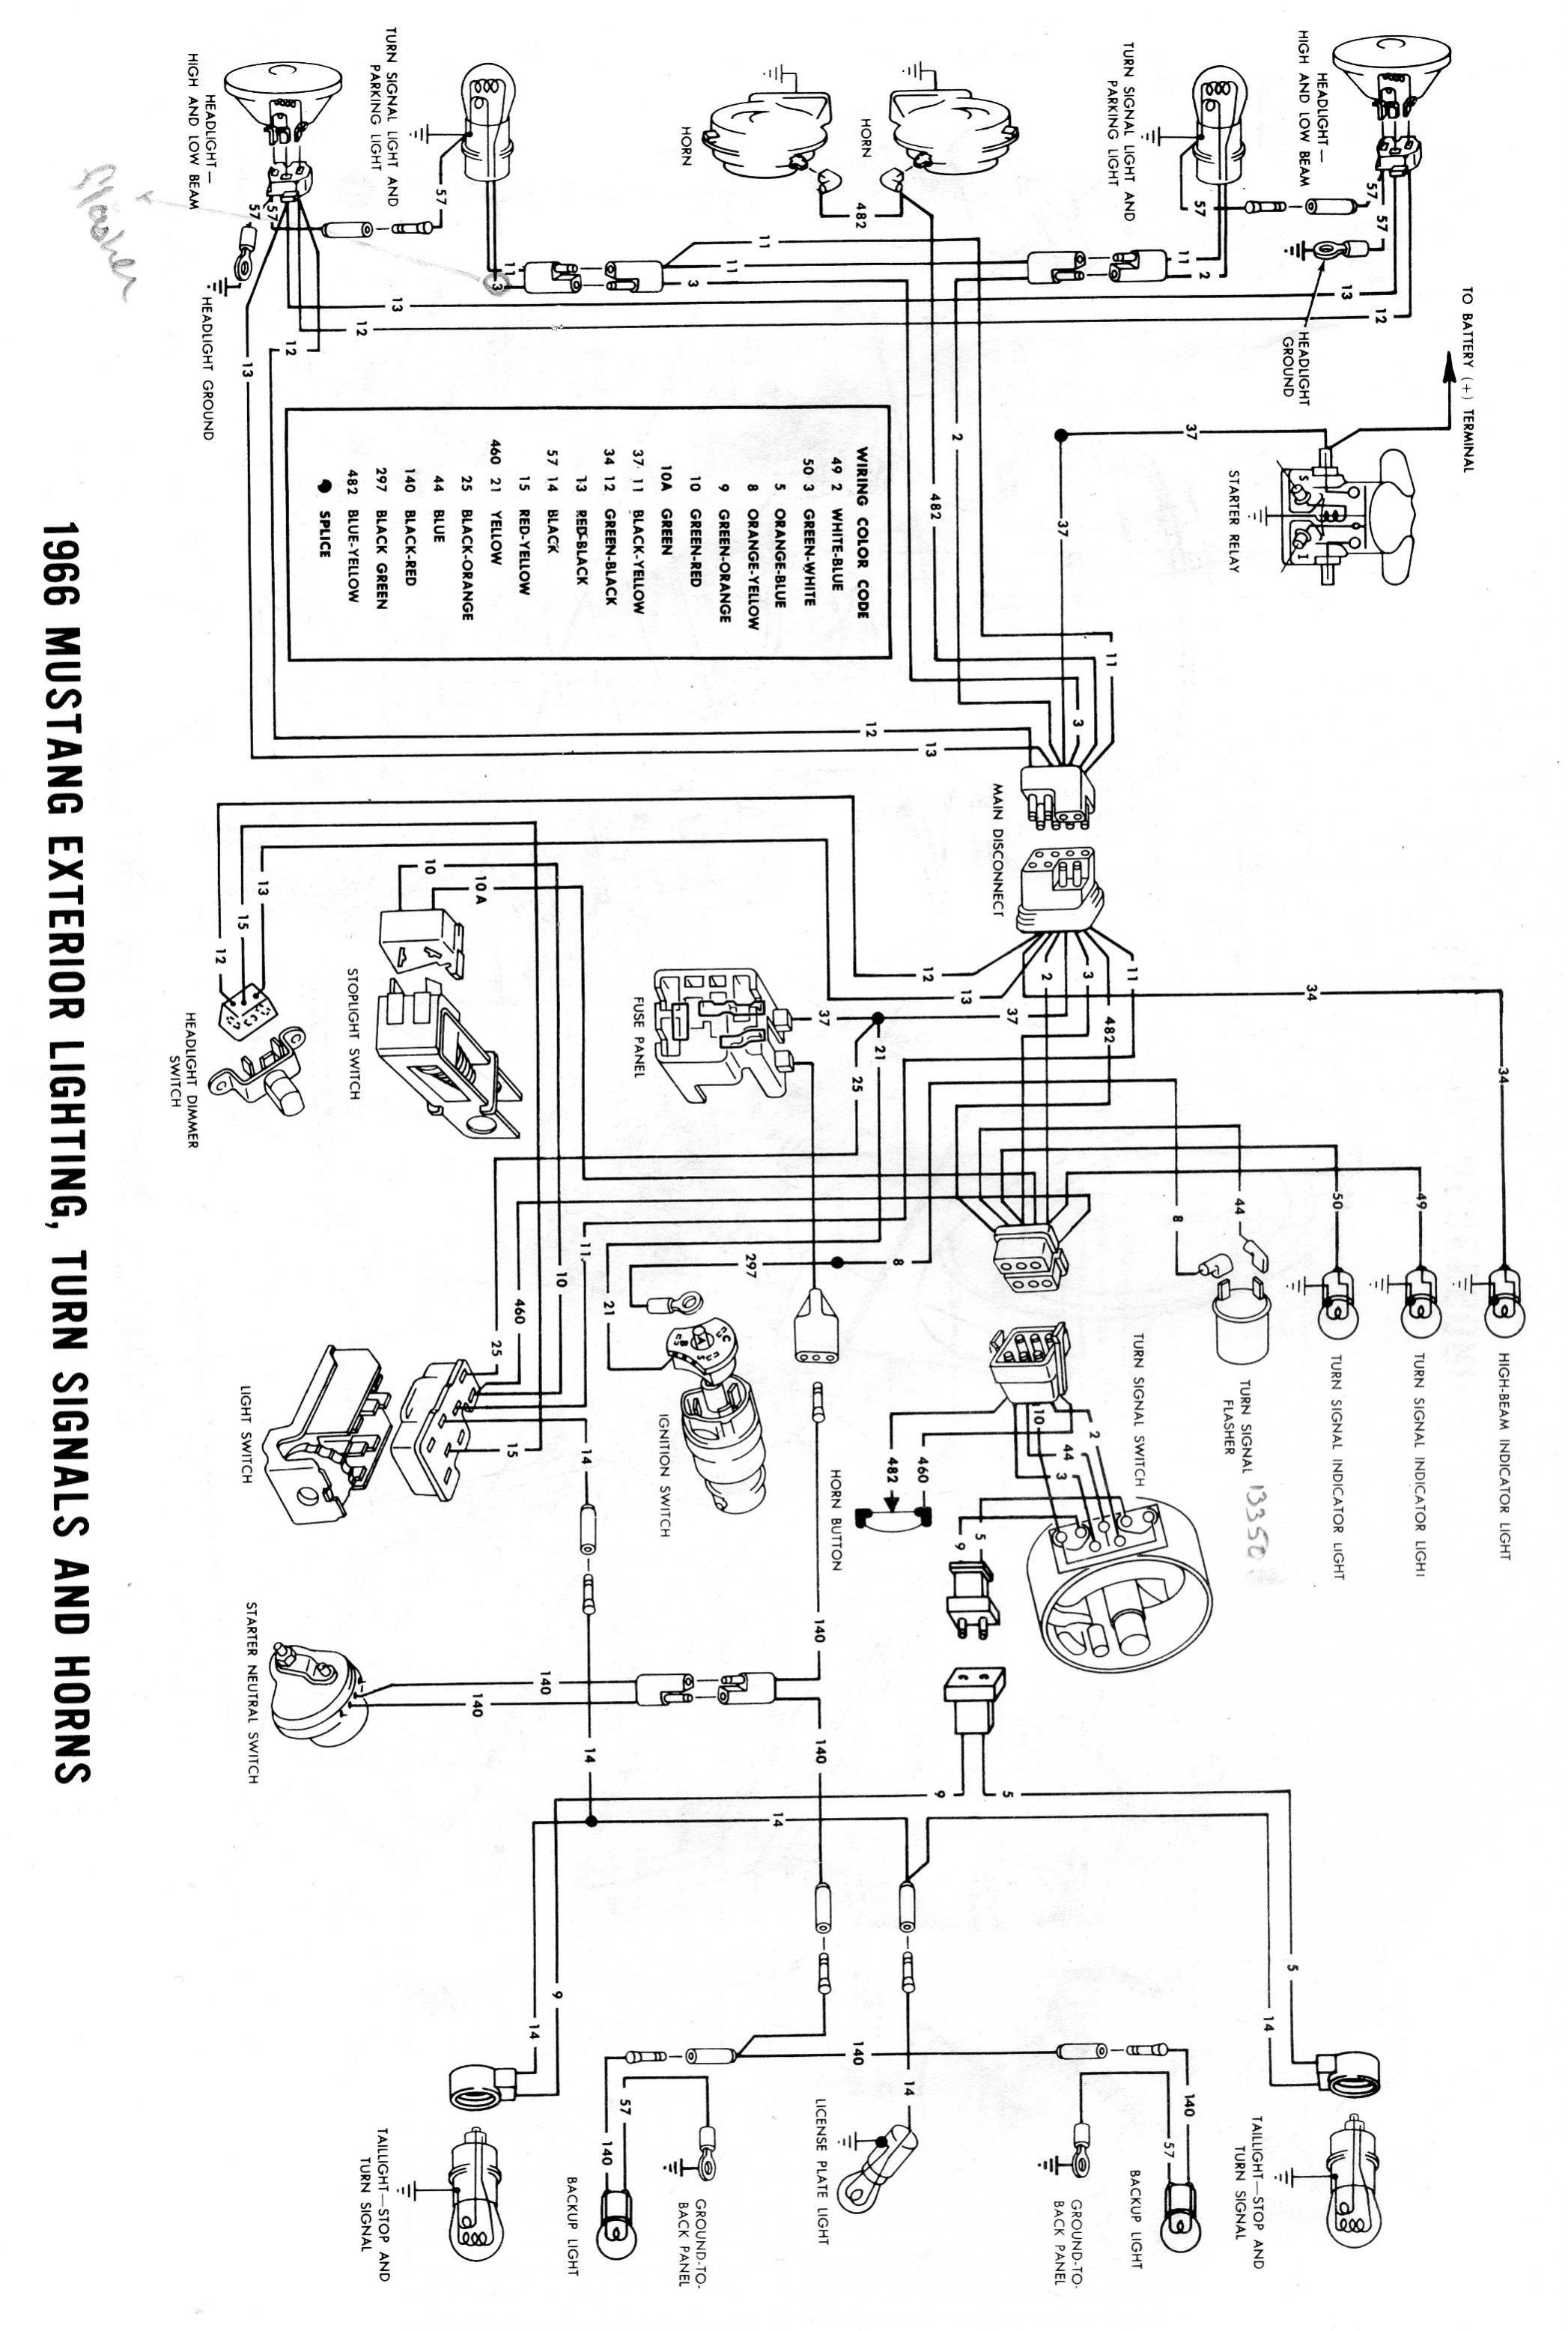 1968 camaro wiring diagram wiring diagram and schematic design 1968 ford mustang electrical wiring diagram schematics